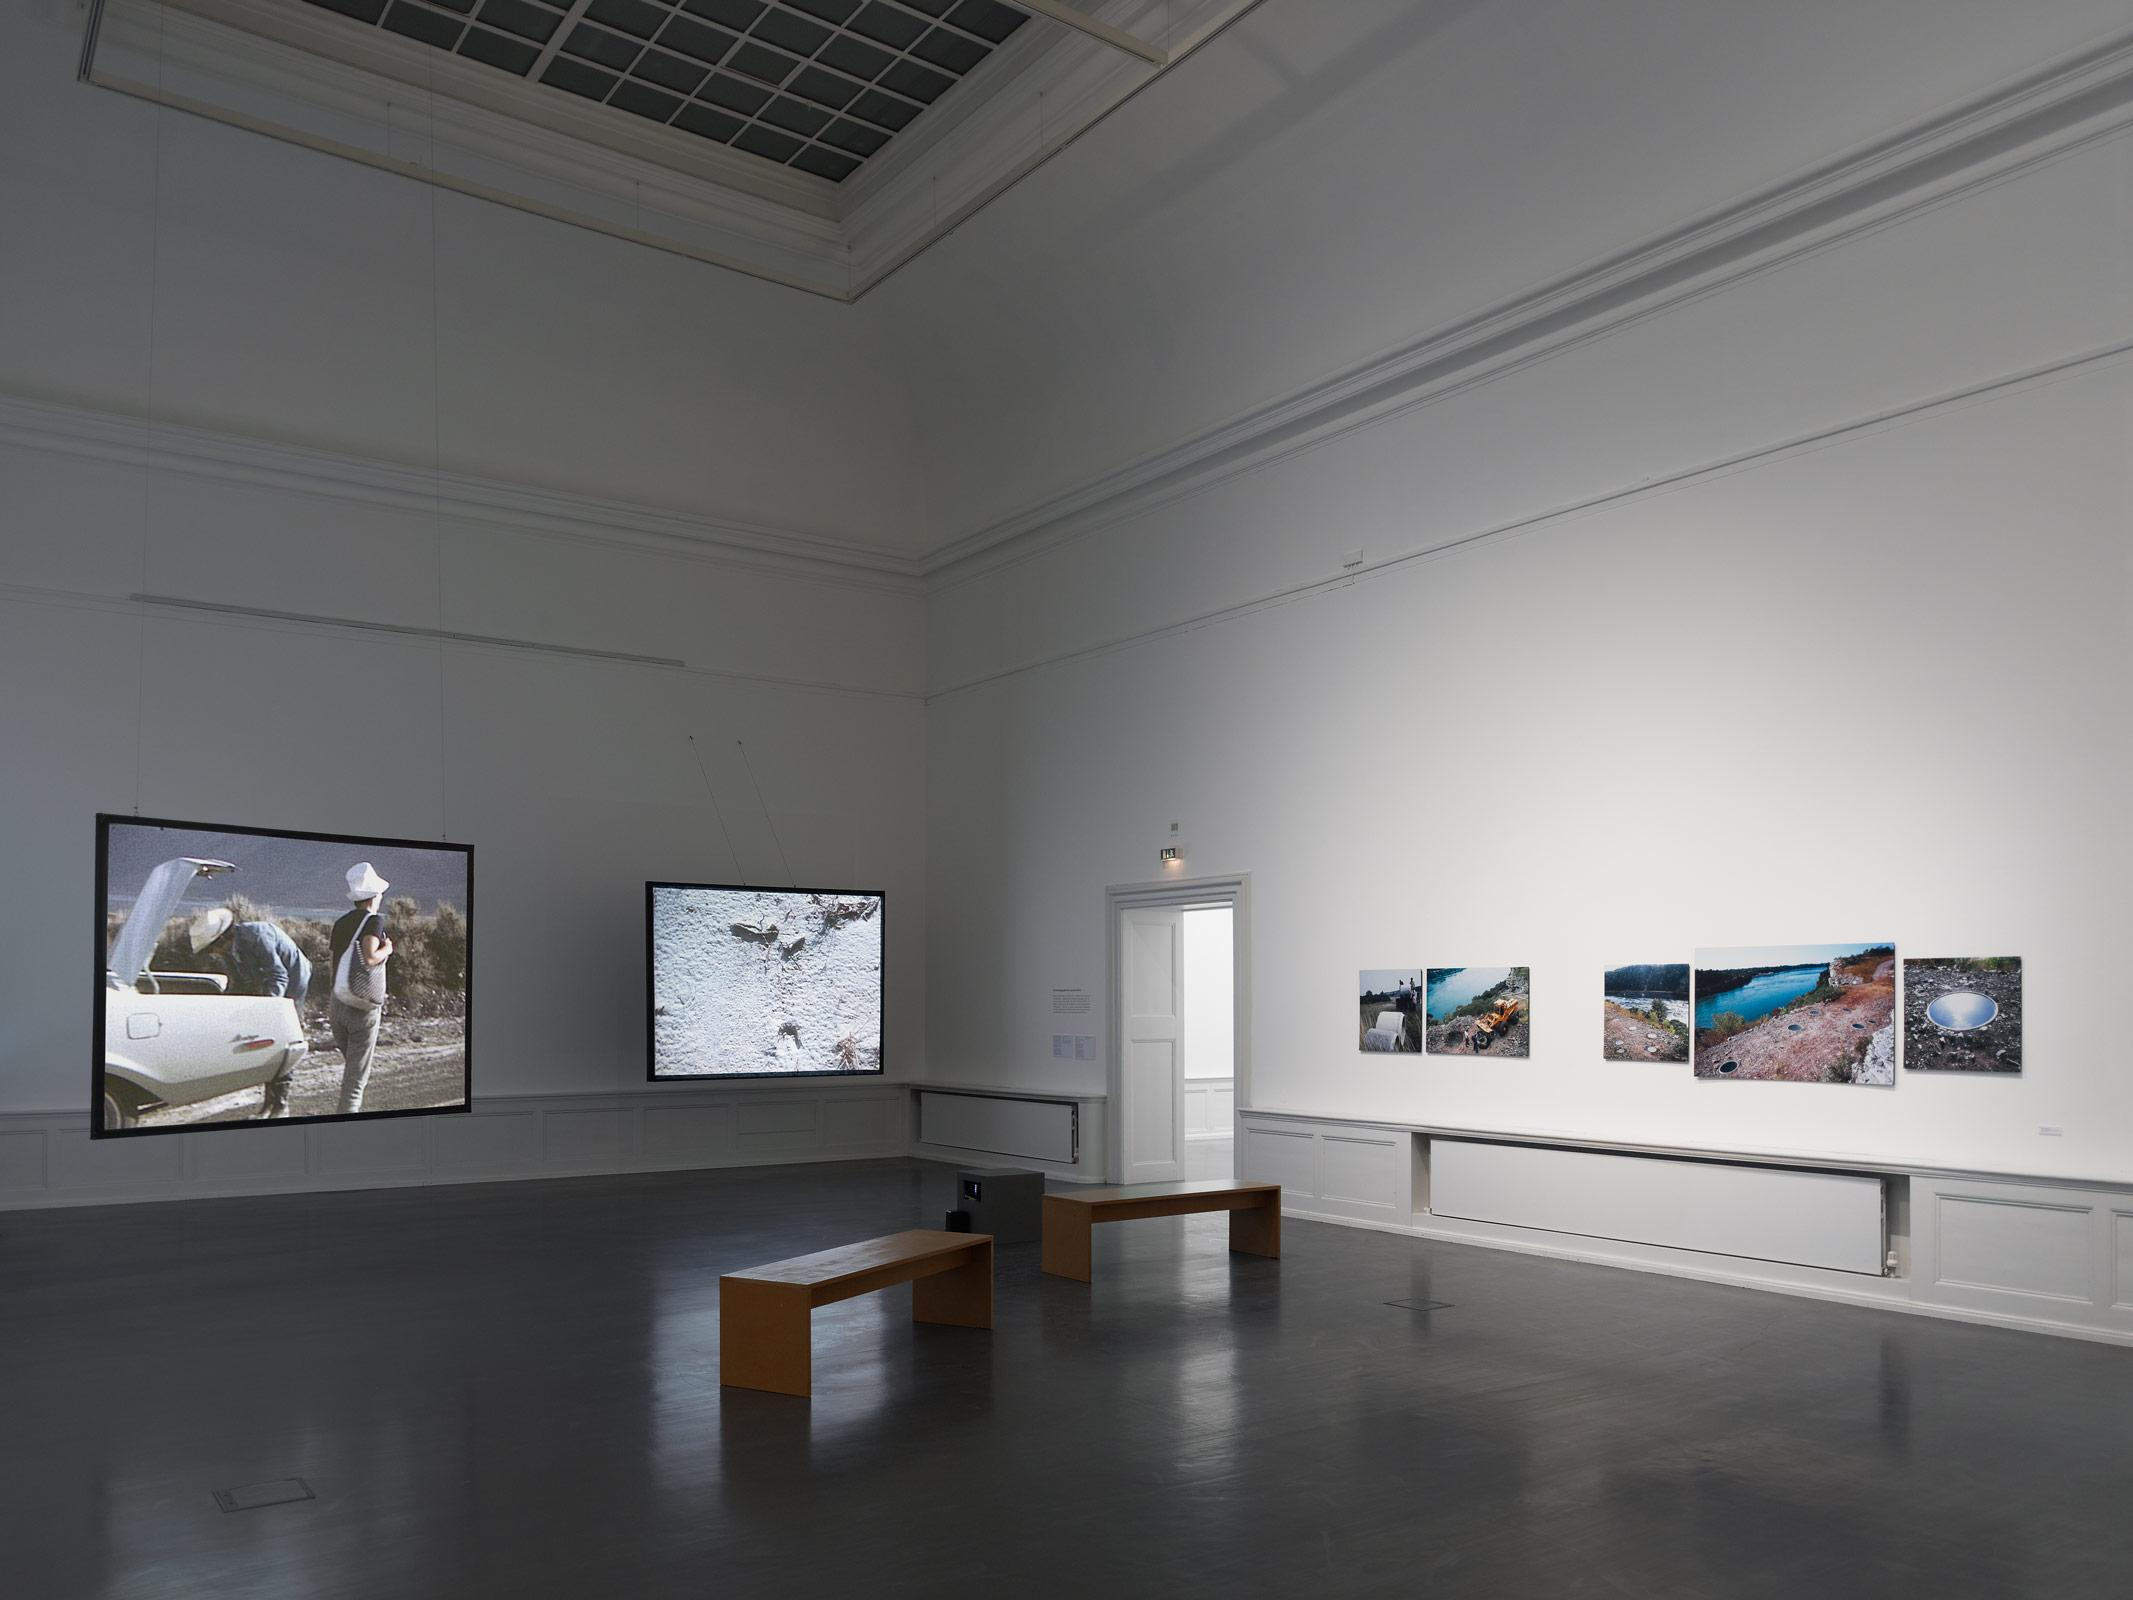 A large white walled room with benches and projected images on two hanging screens and images on the wall.